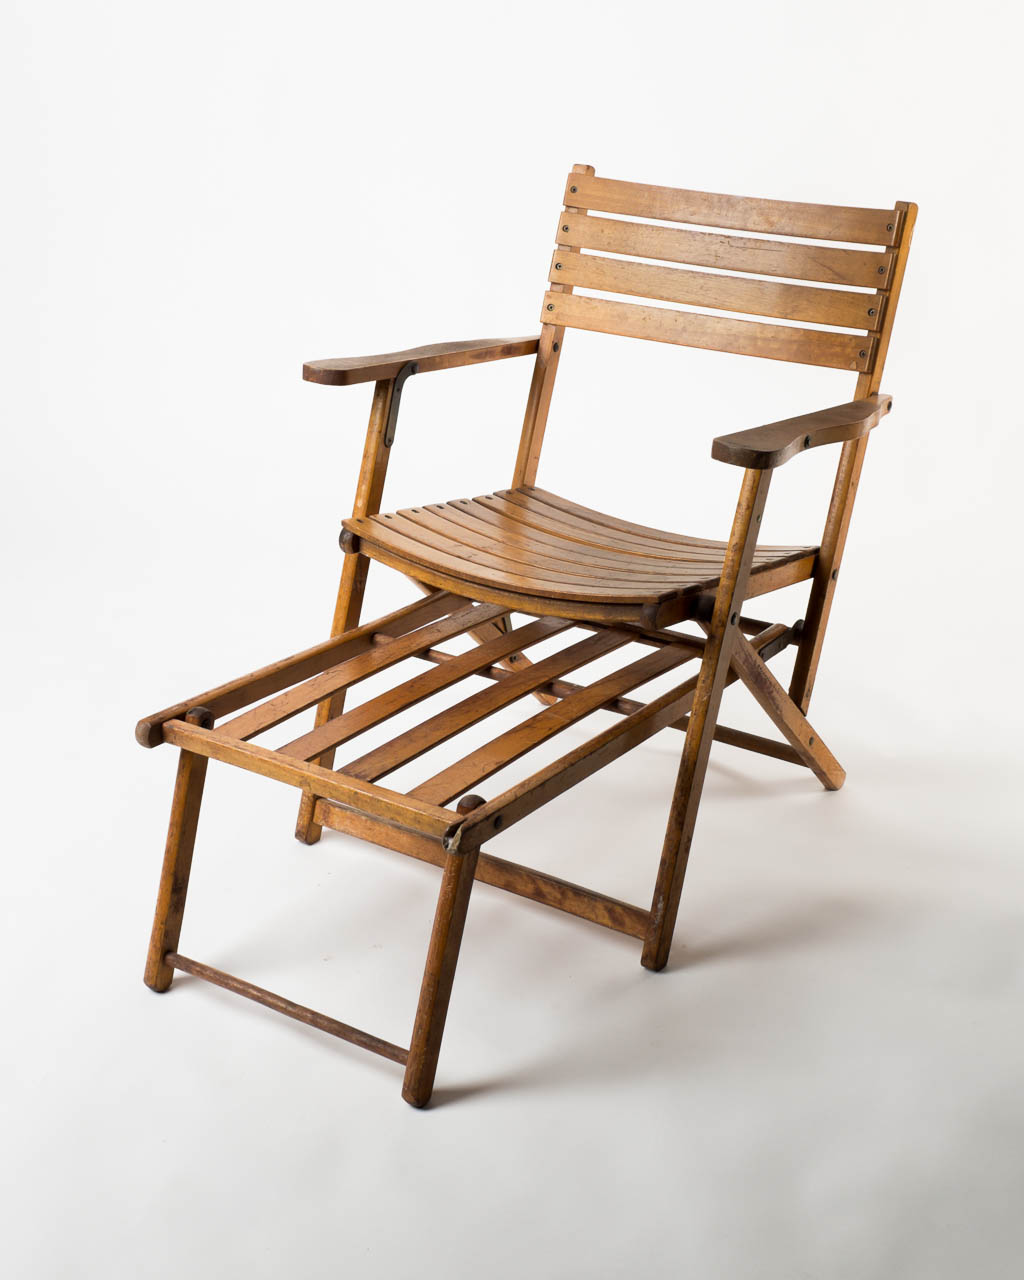 vintage wooden chairs bed that turns into a chair ch060 beach prop rental acme brooklyn front view of